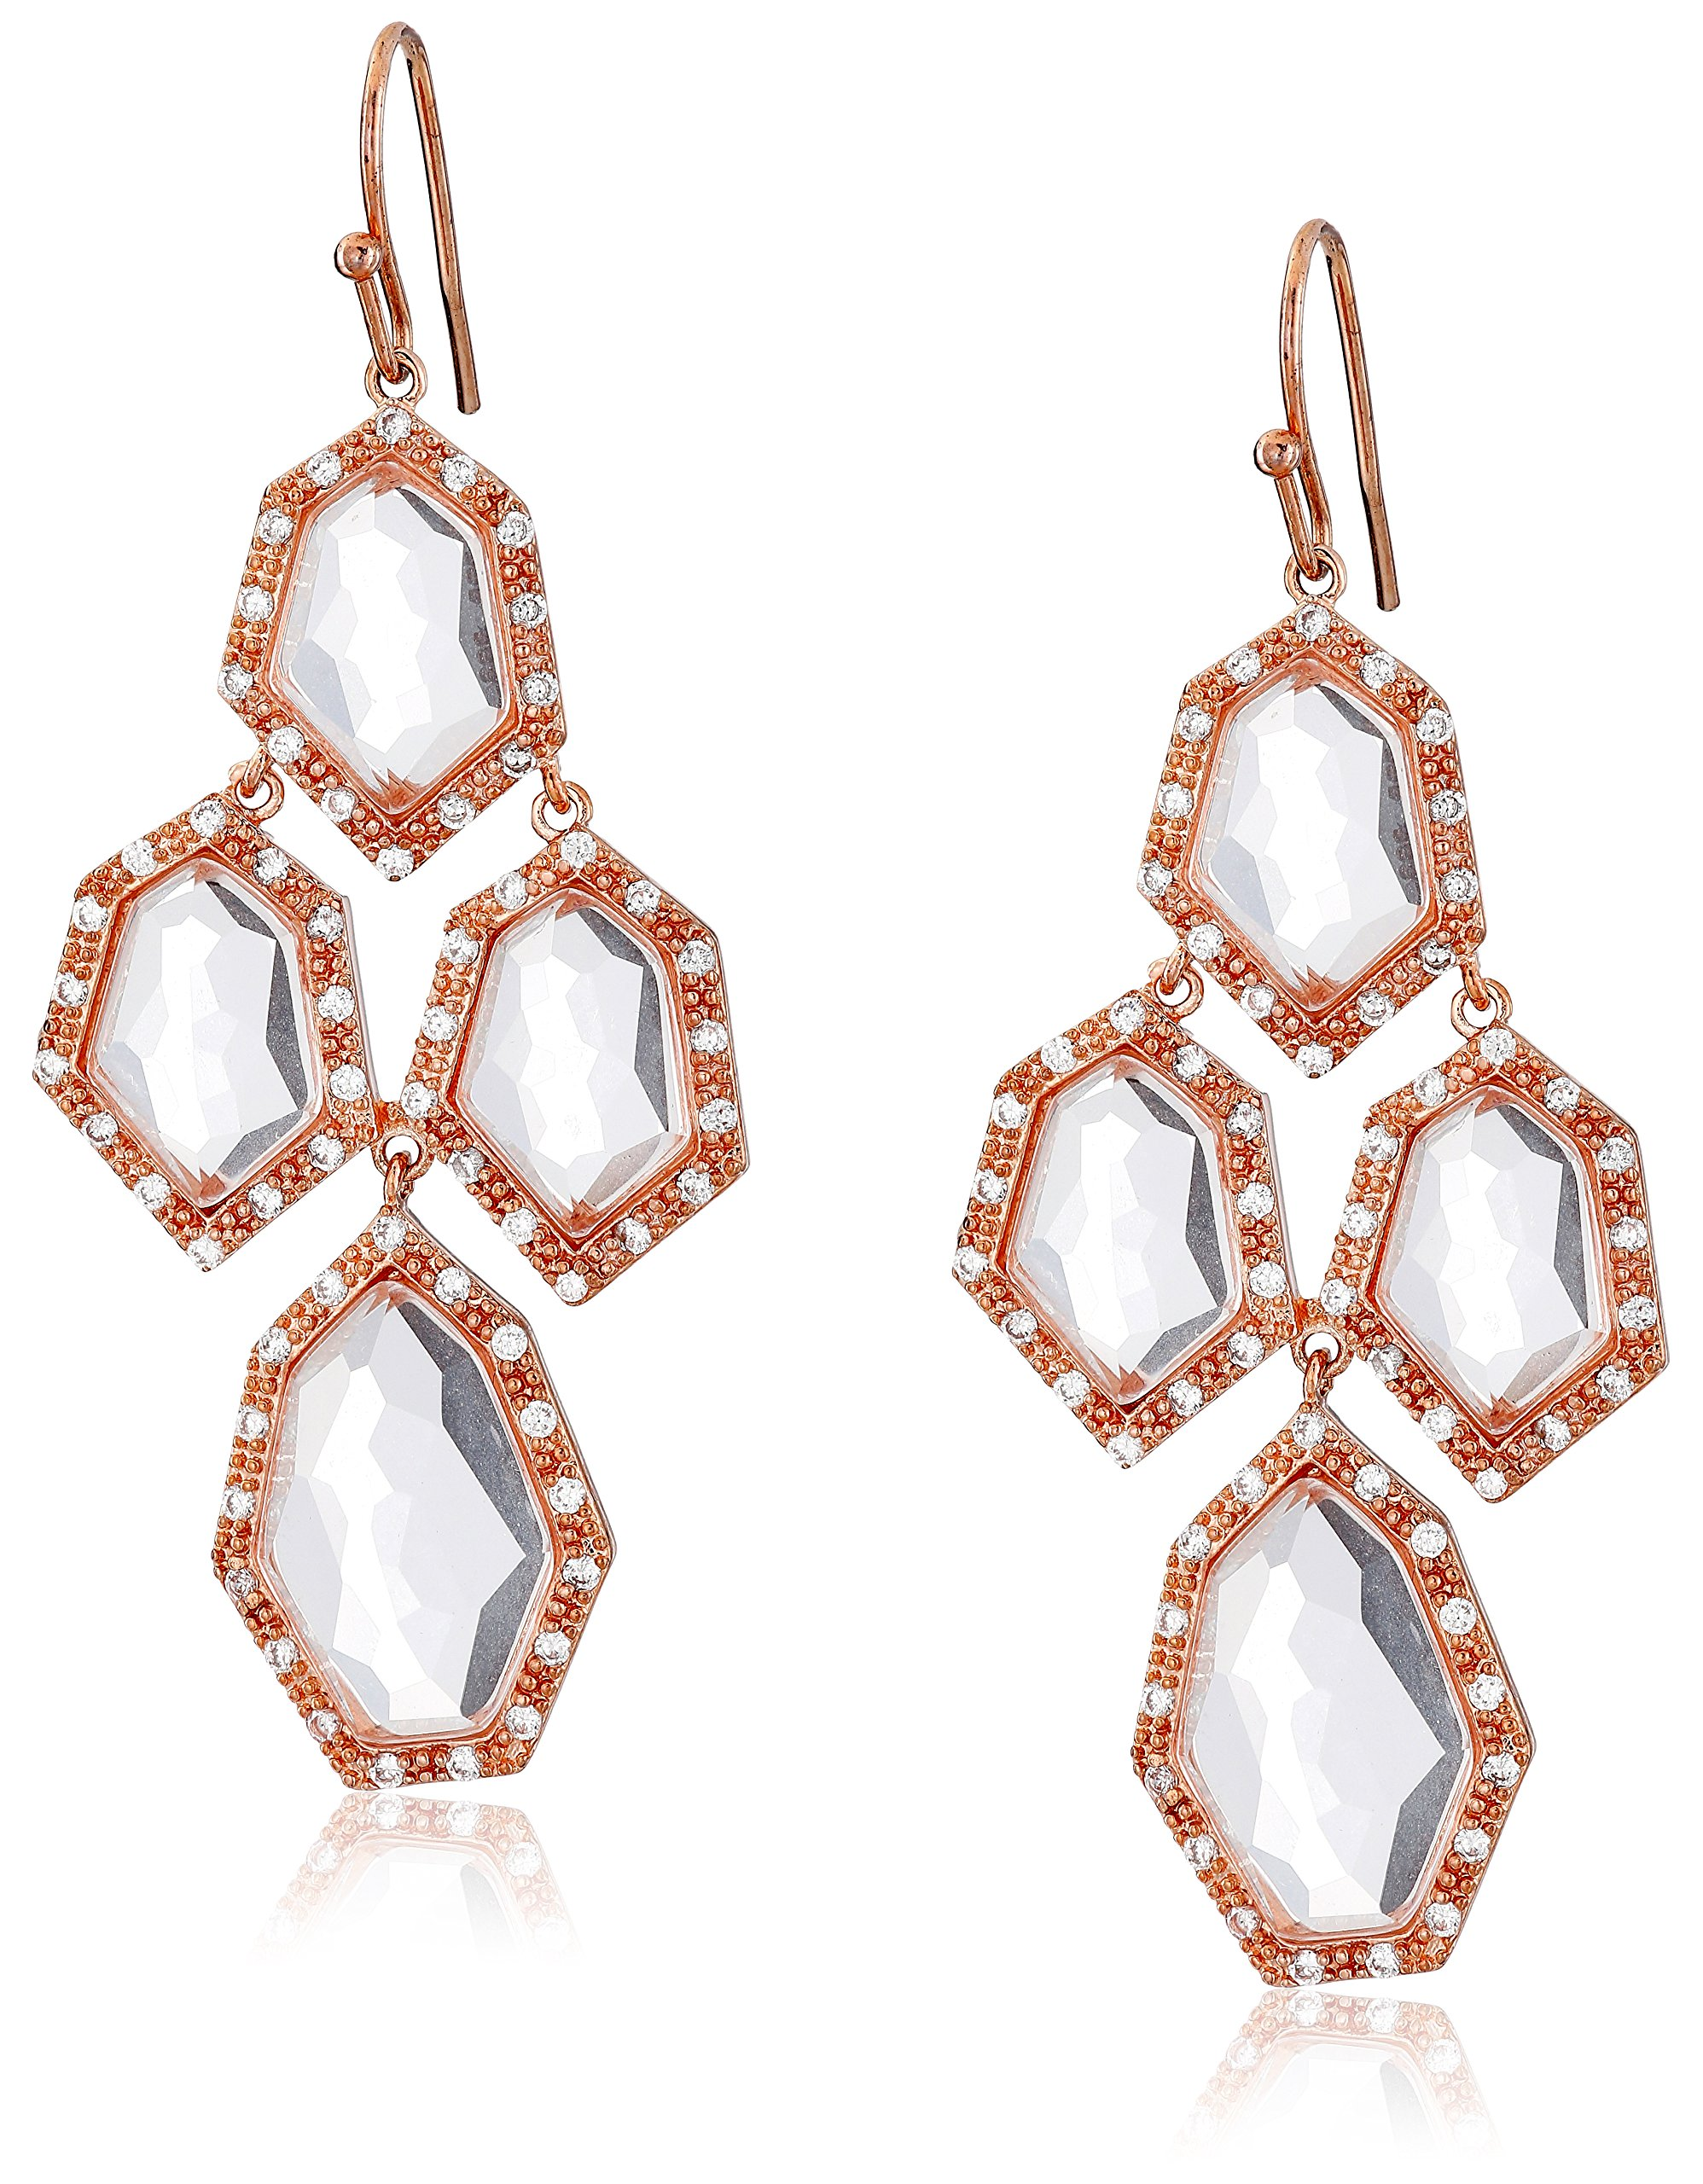 Riccova''City Lights'' Rose Gold-Plated Cubic Zirconia and Faceted Glass Chandelier Earrings by Riccova